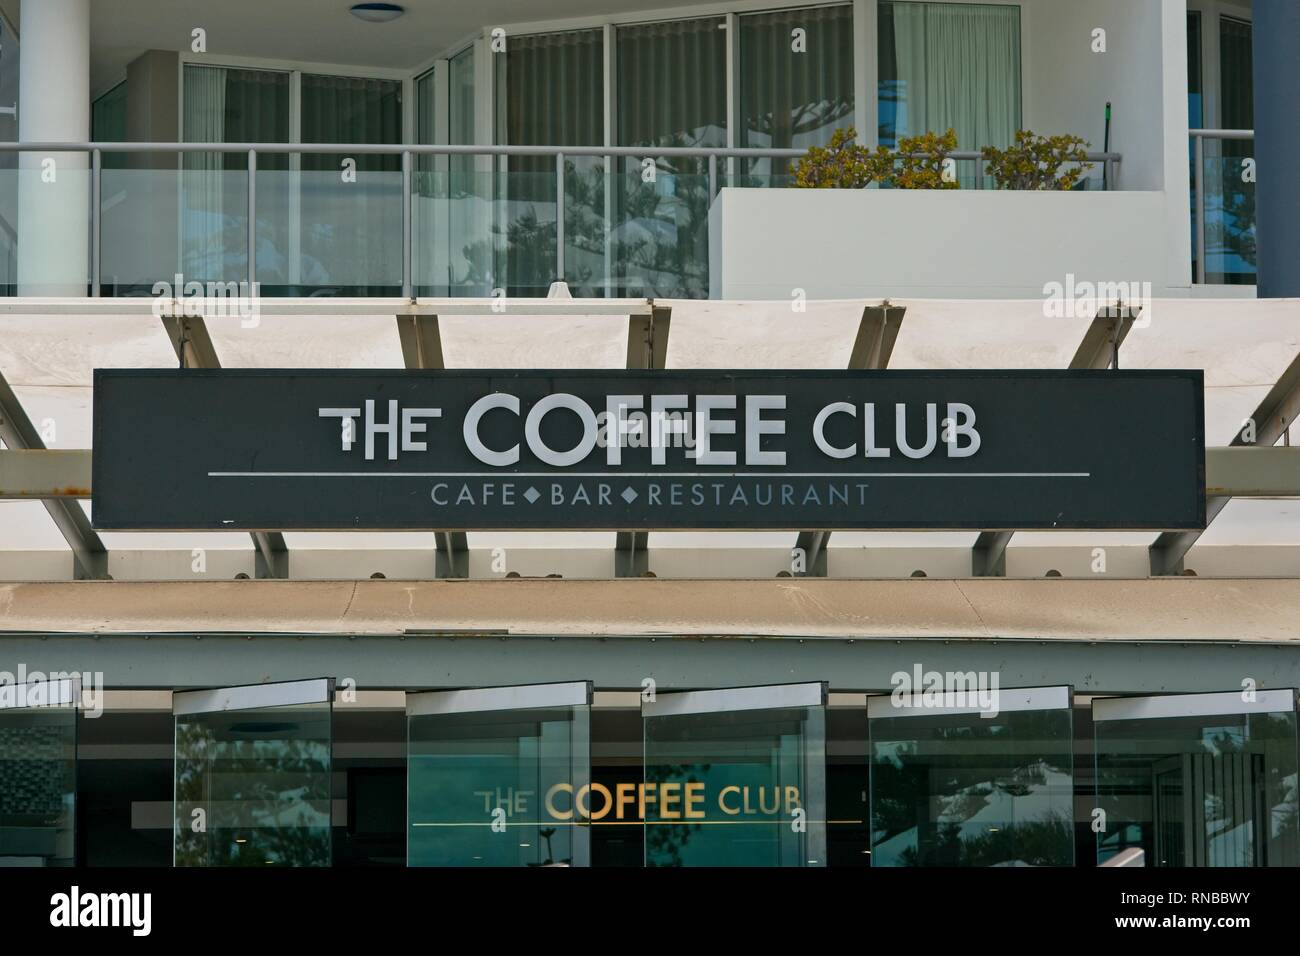 Caloundra,Qld, Australia - February 18, 2019: The Coffee Club sign on a modern building - Stock Image